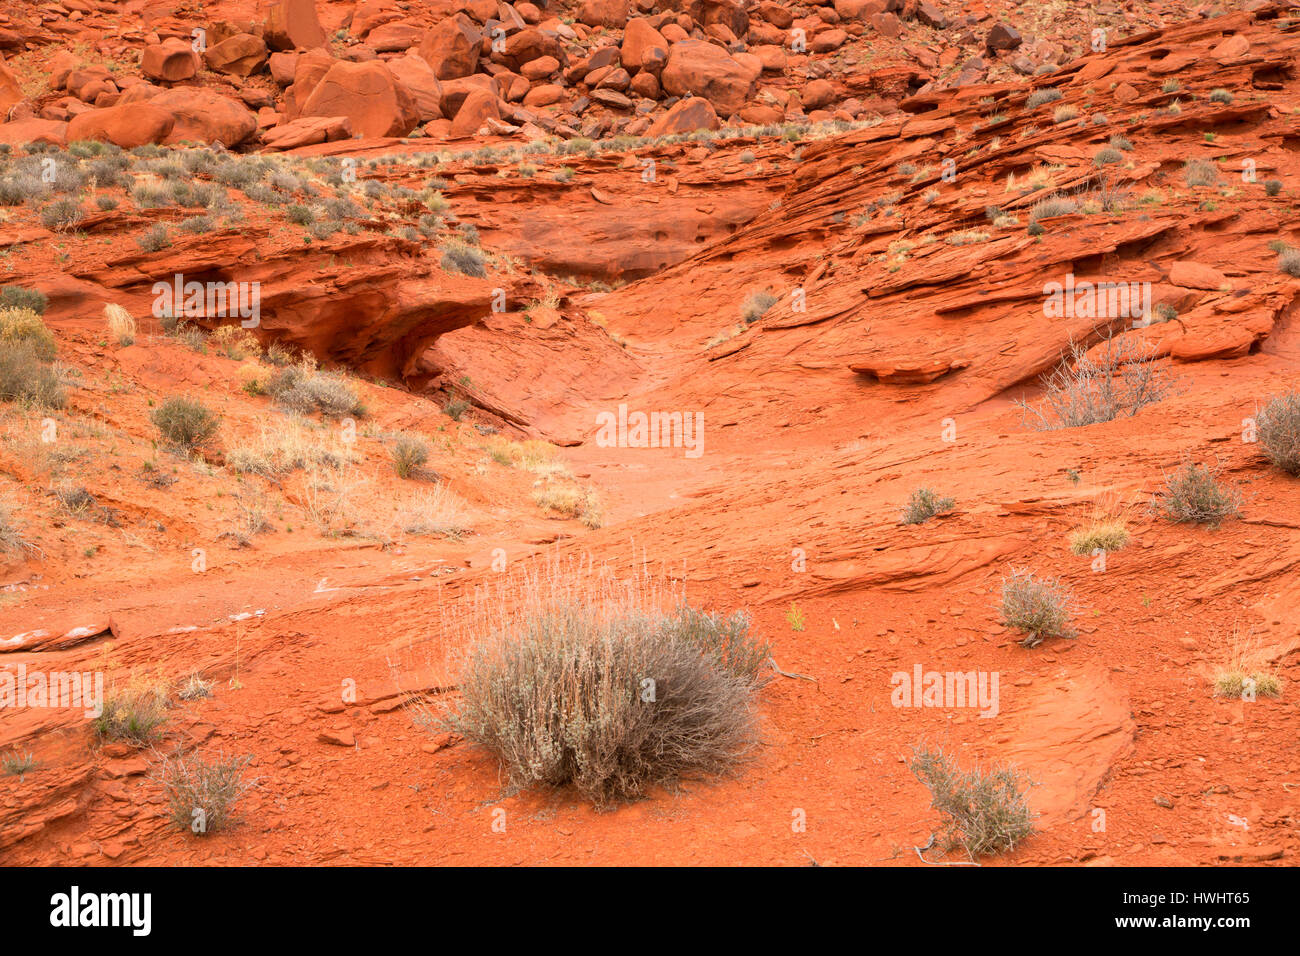 Sandstone wash with sage at Cliffline Viewpoint, Dead Horse Mesa Scenic Byway, Grand County, Utah - Stock Image